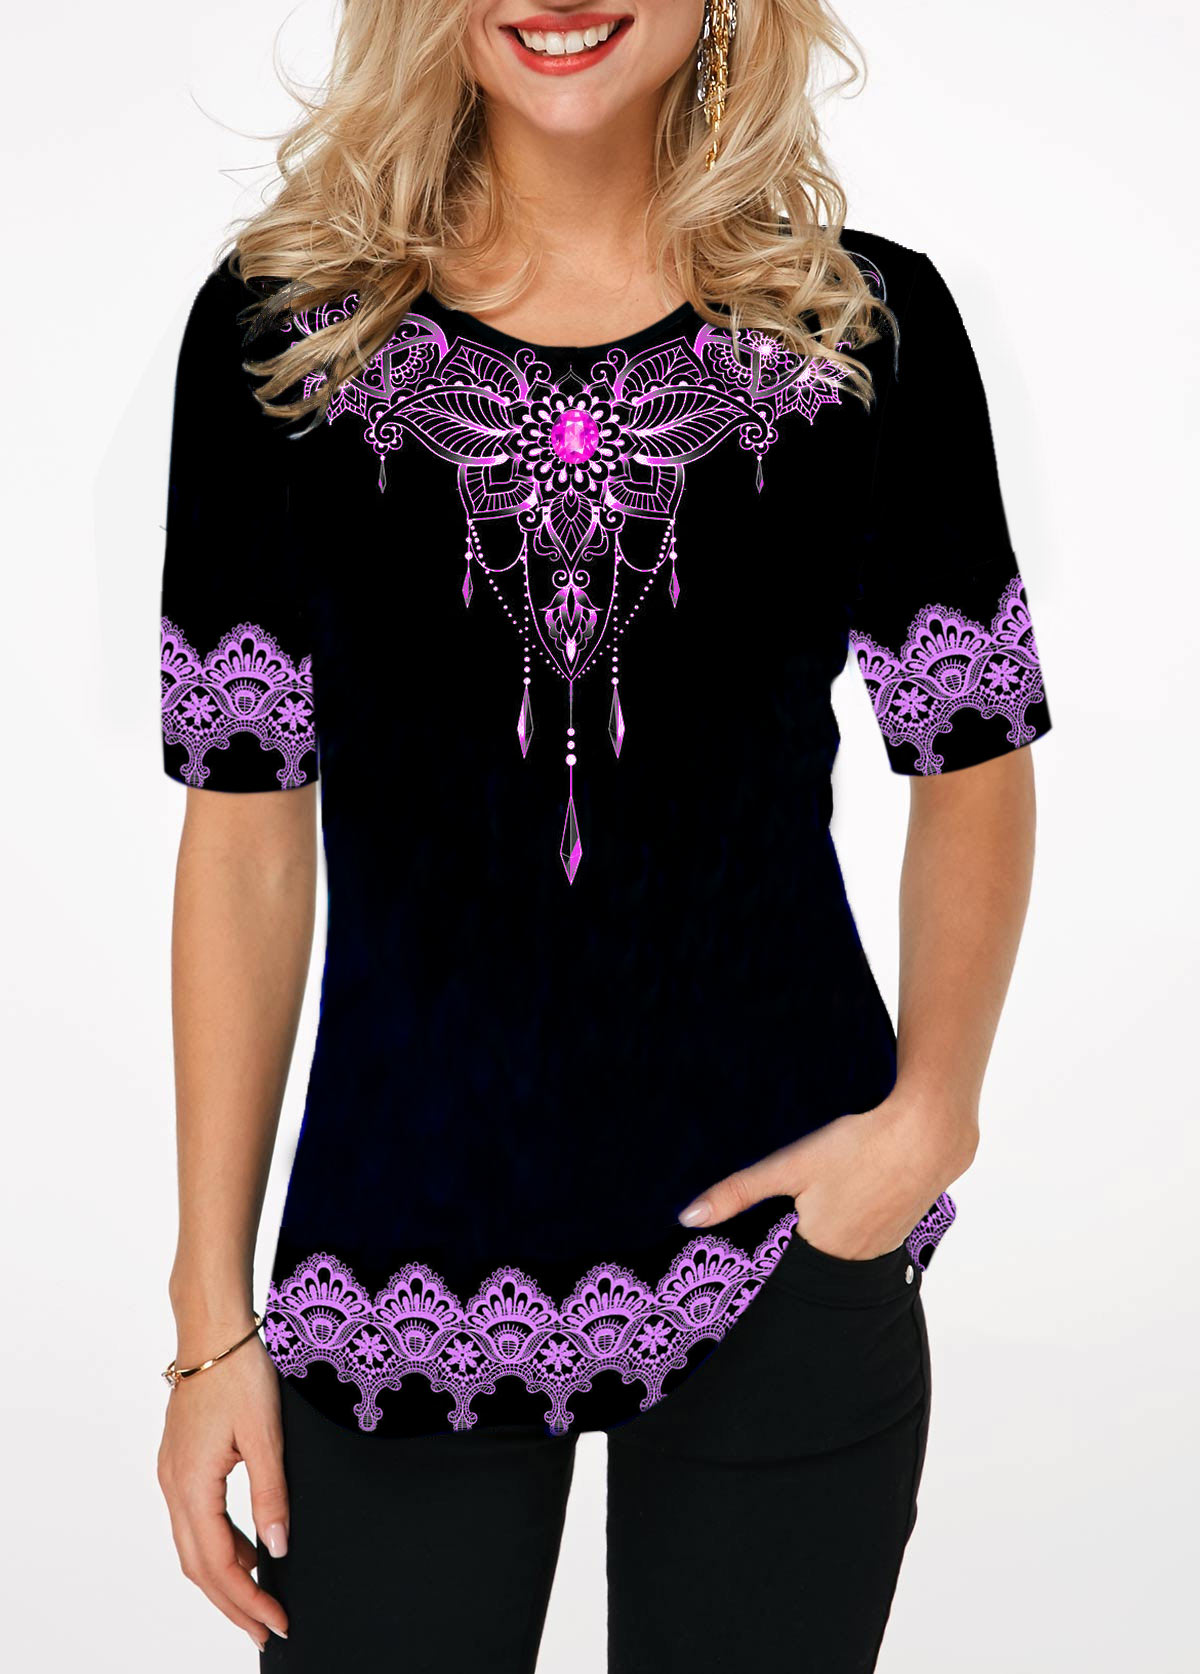 Rhinestone Embellished Tribal Print Round Neck T Shirt